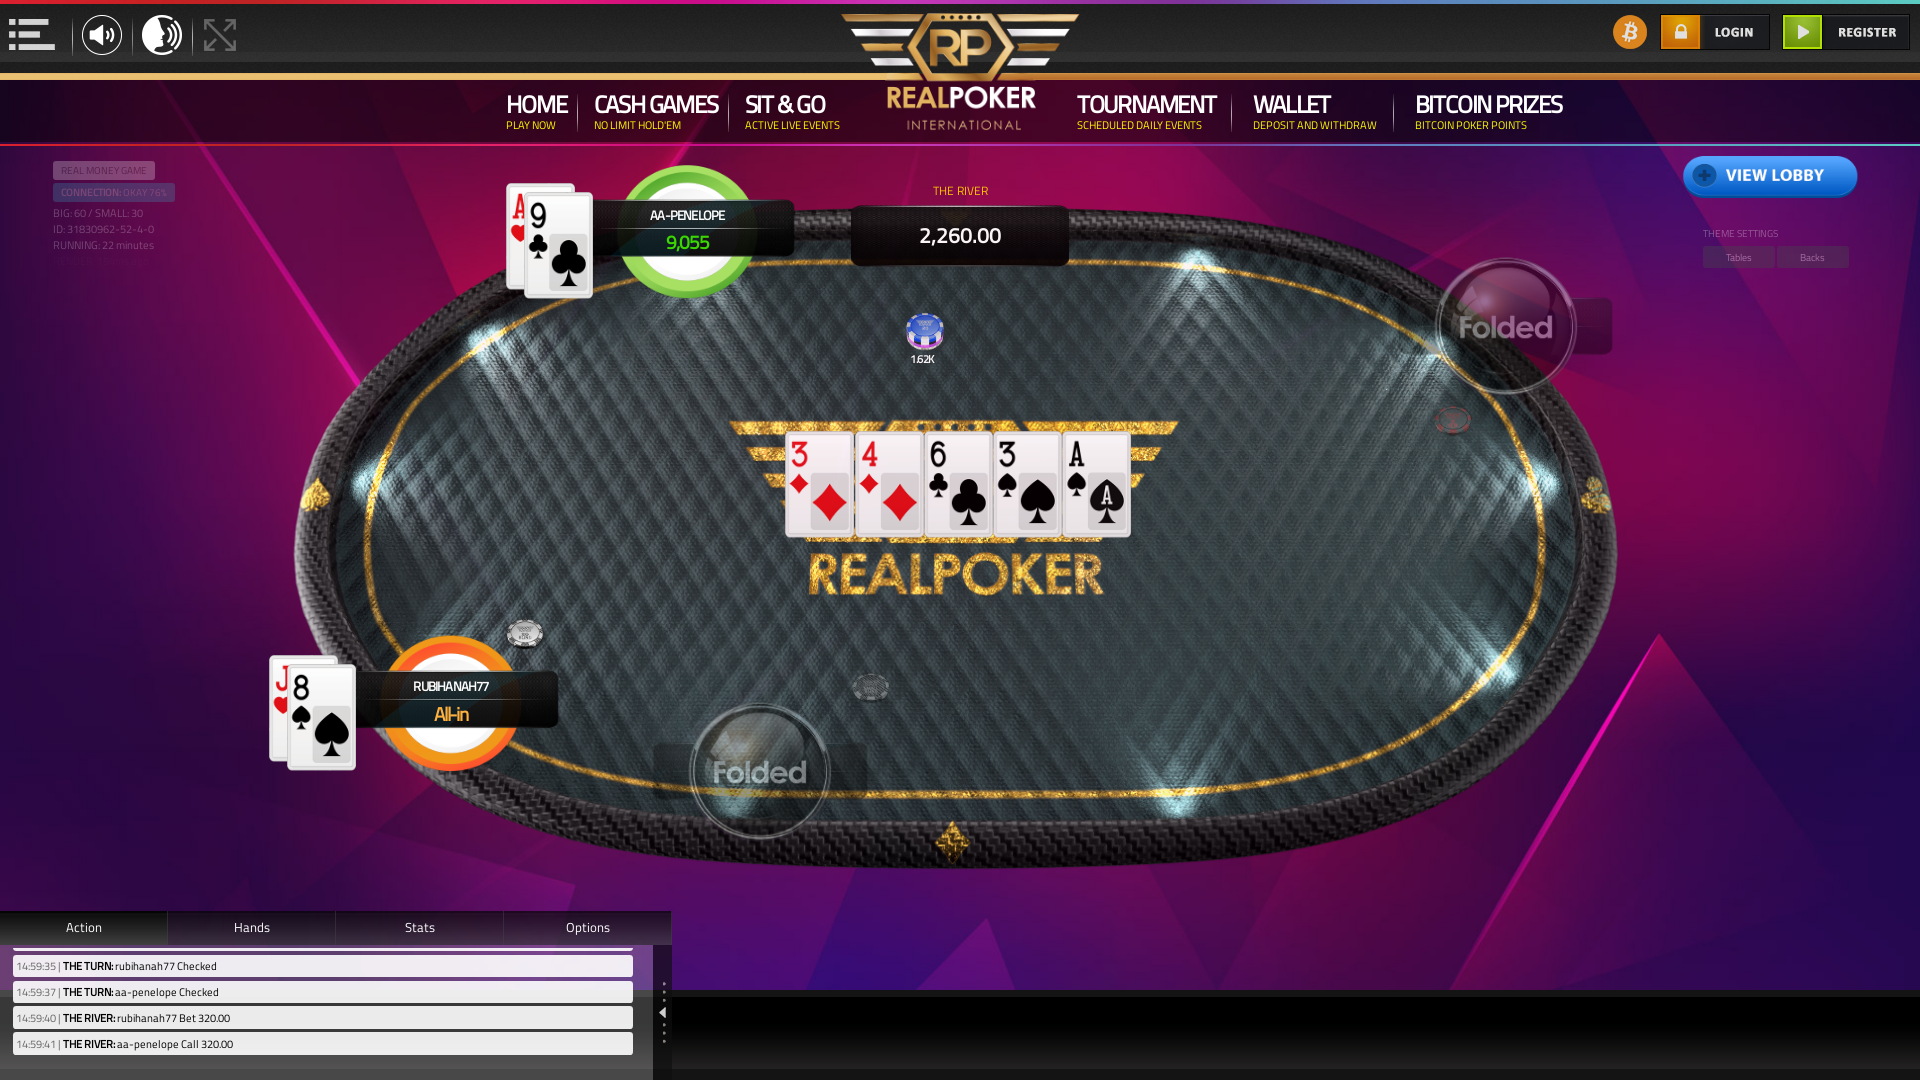 10 player poker in the 22nd minute